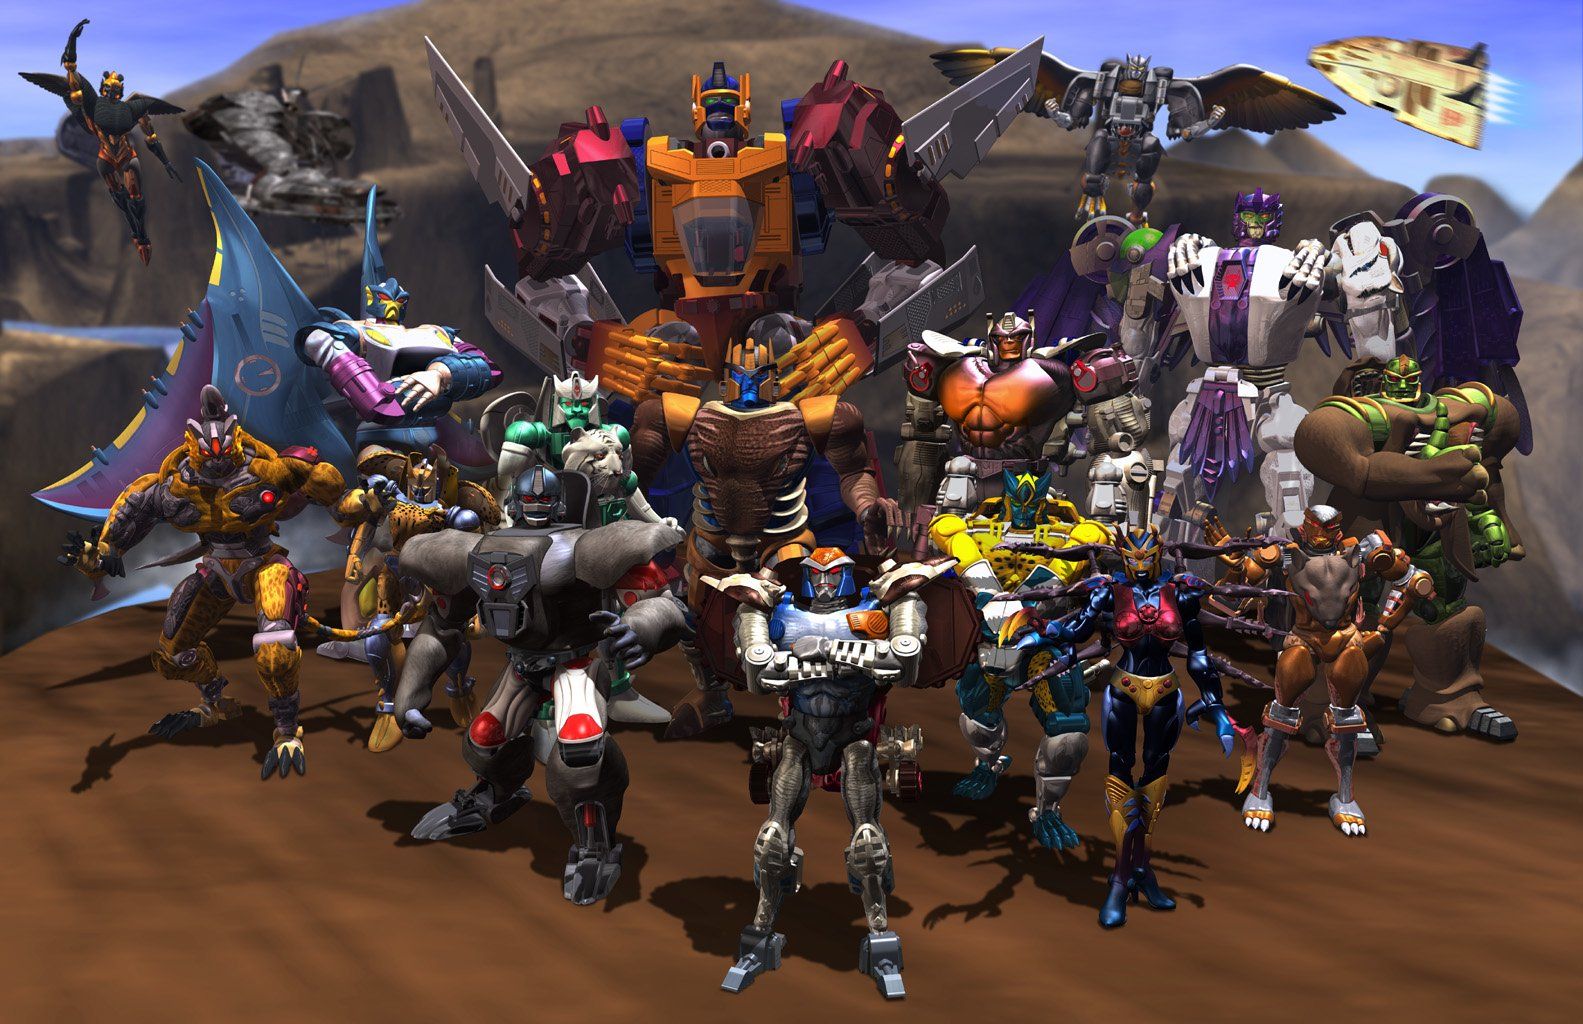 Tekenfilm - Beast Wars: Transformers  Robot Beast Wars Transformers Wallpaper